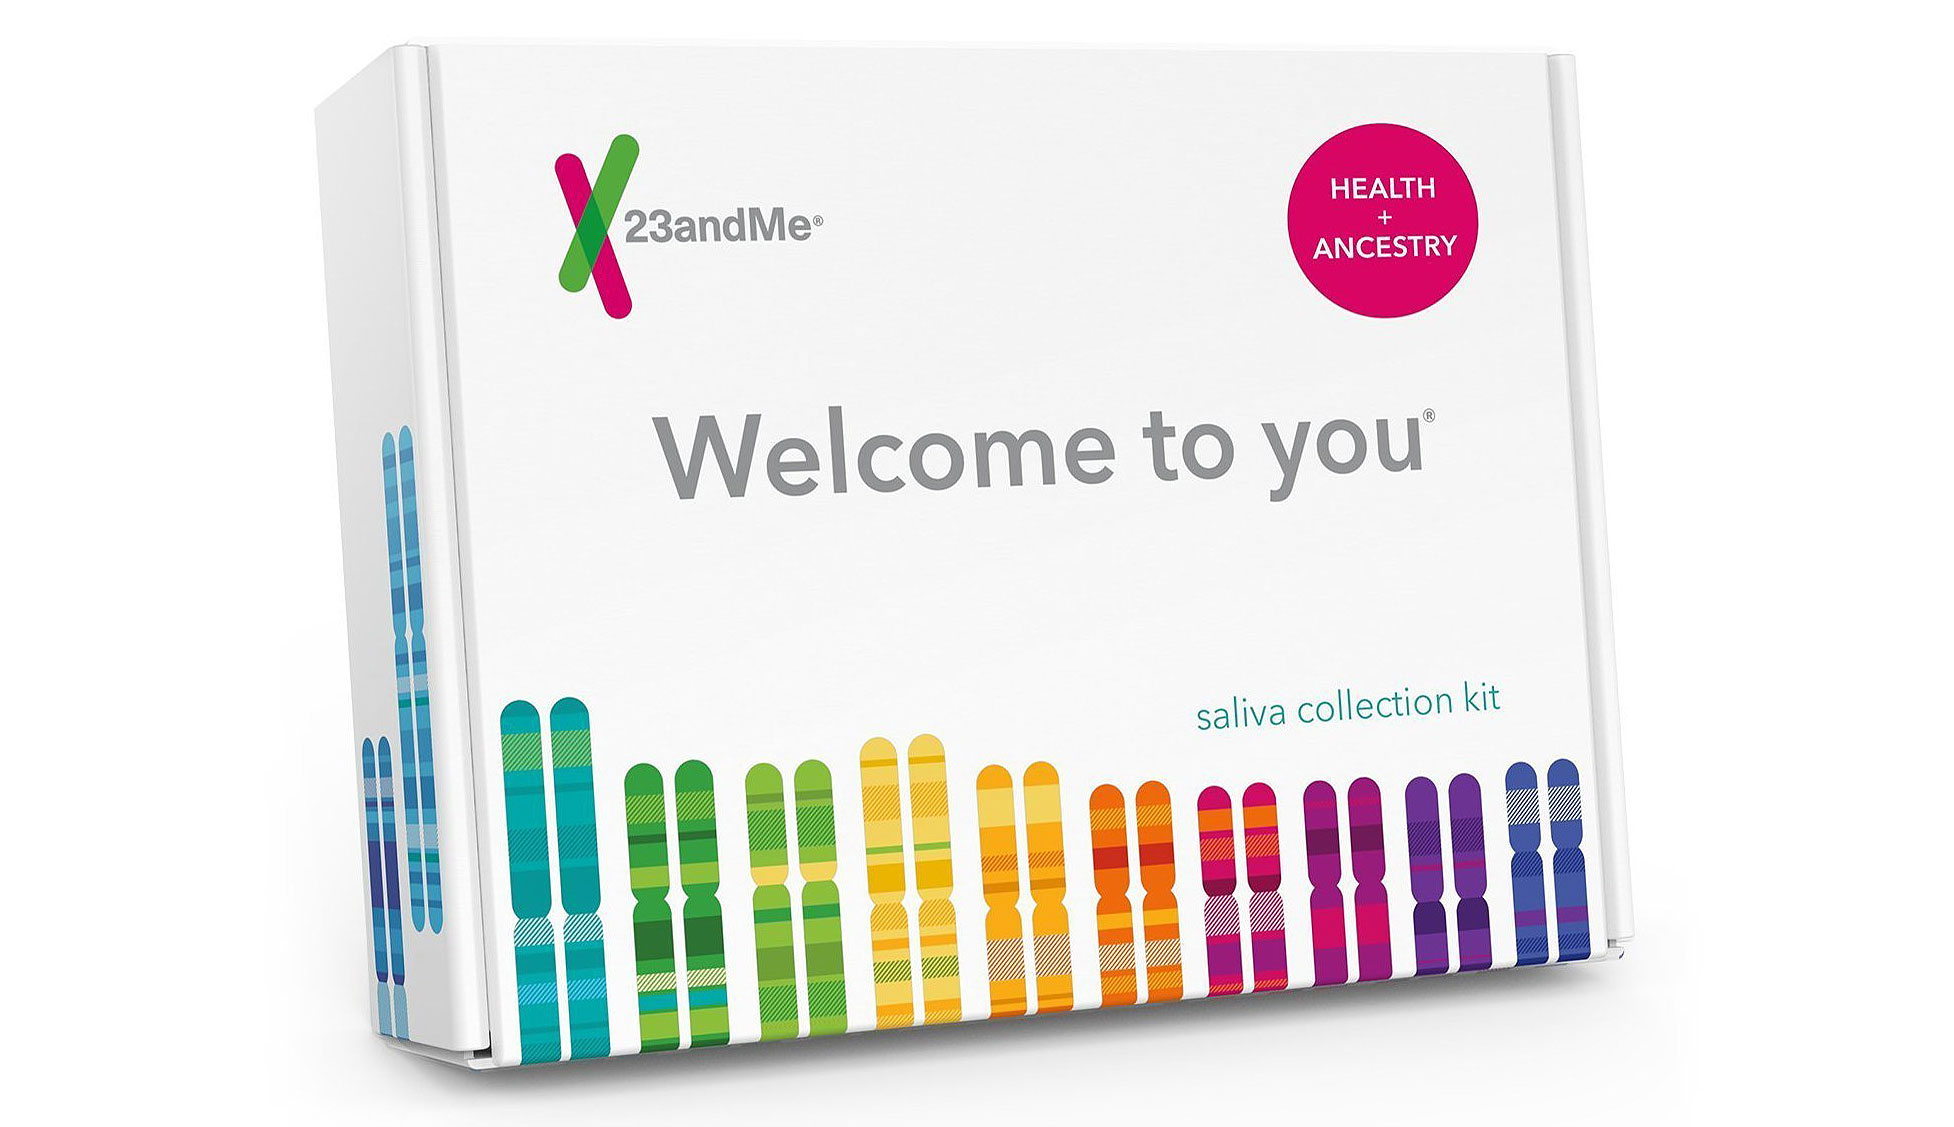 23andMe Health and Ancestry Kit